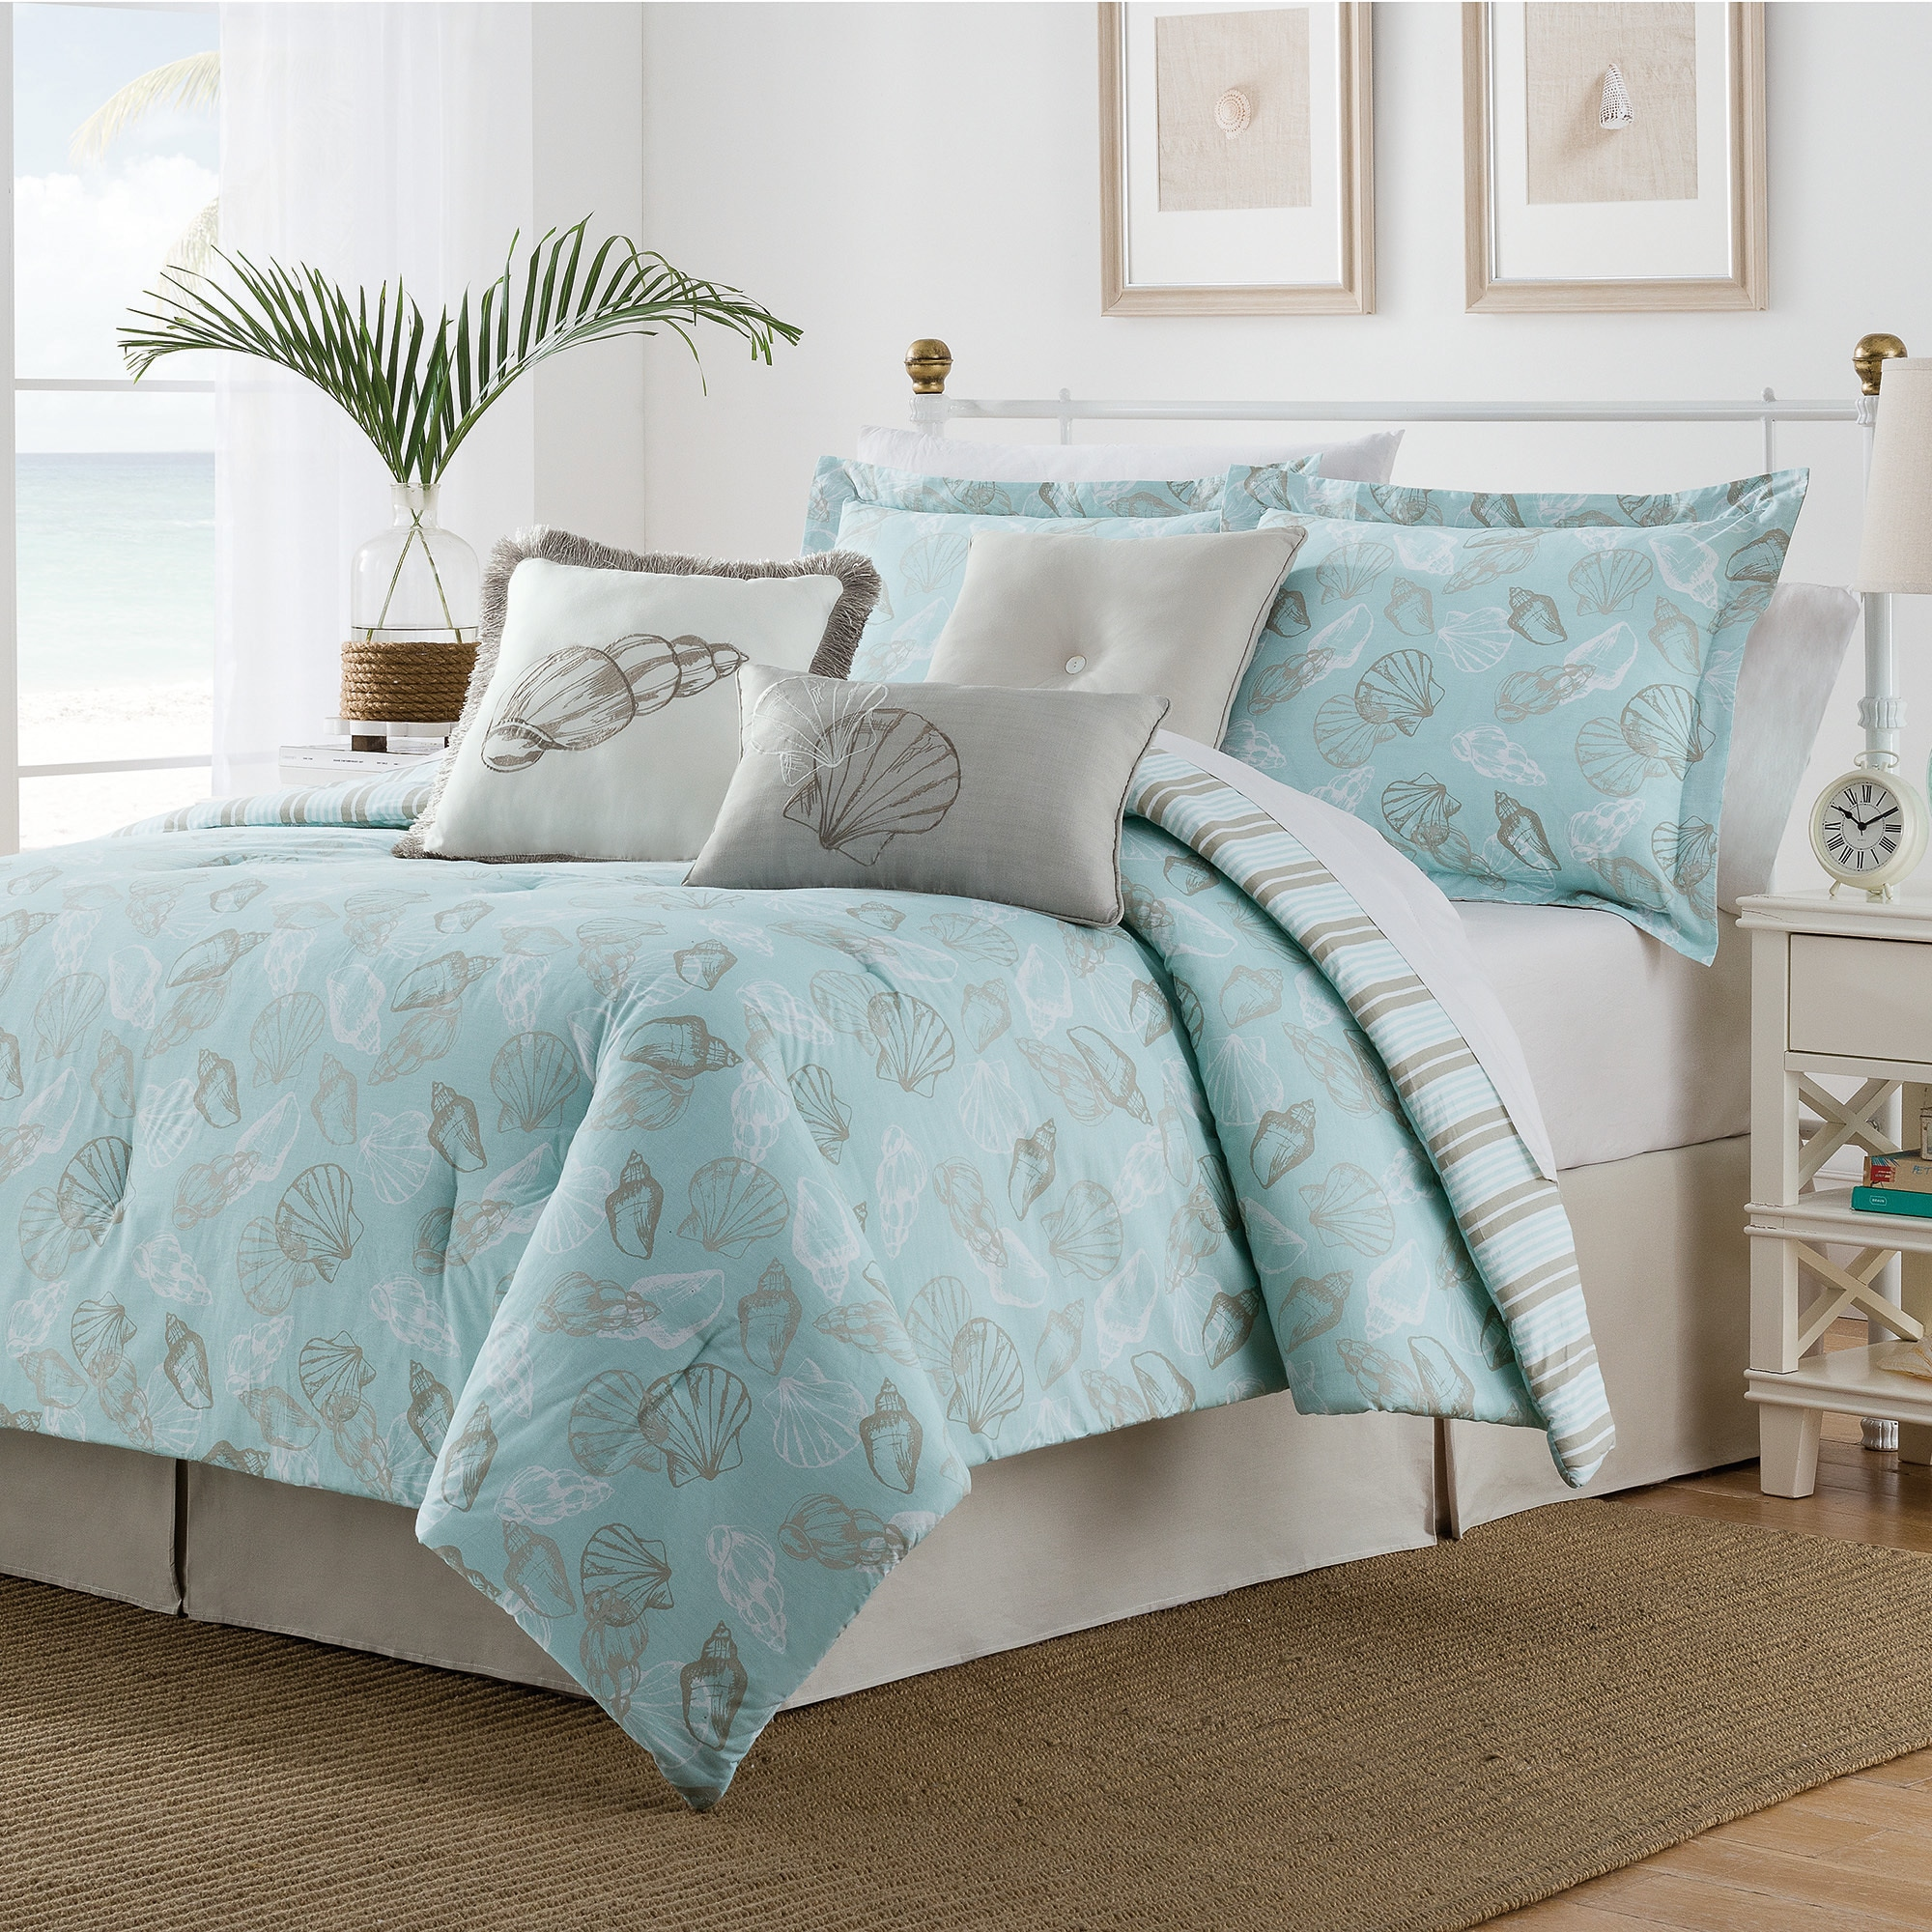 Havenside Home Blue Hill Seashell Tan 7 Piece Comforter Set